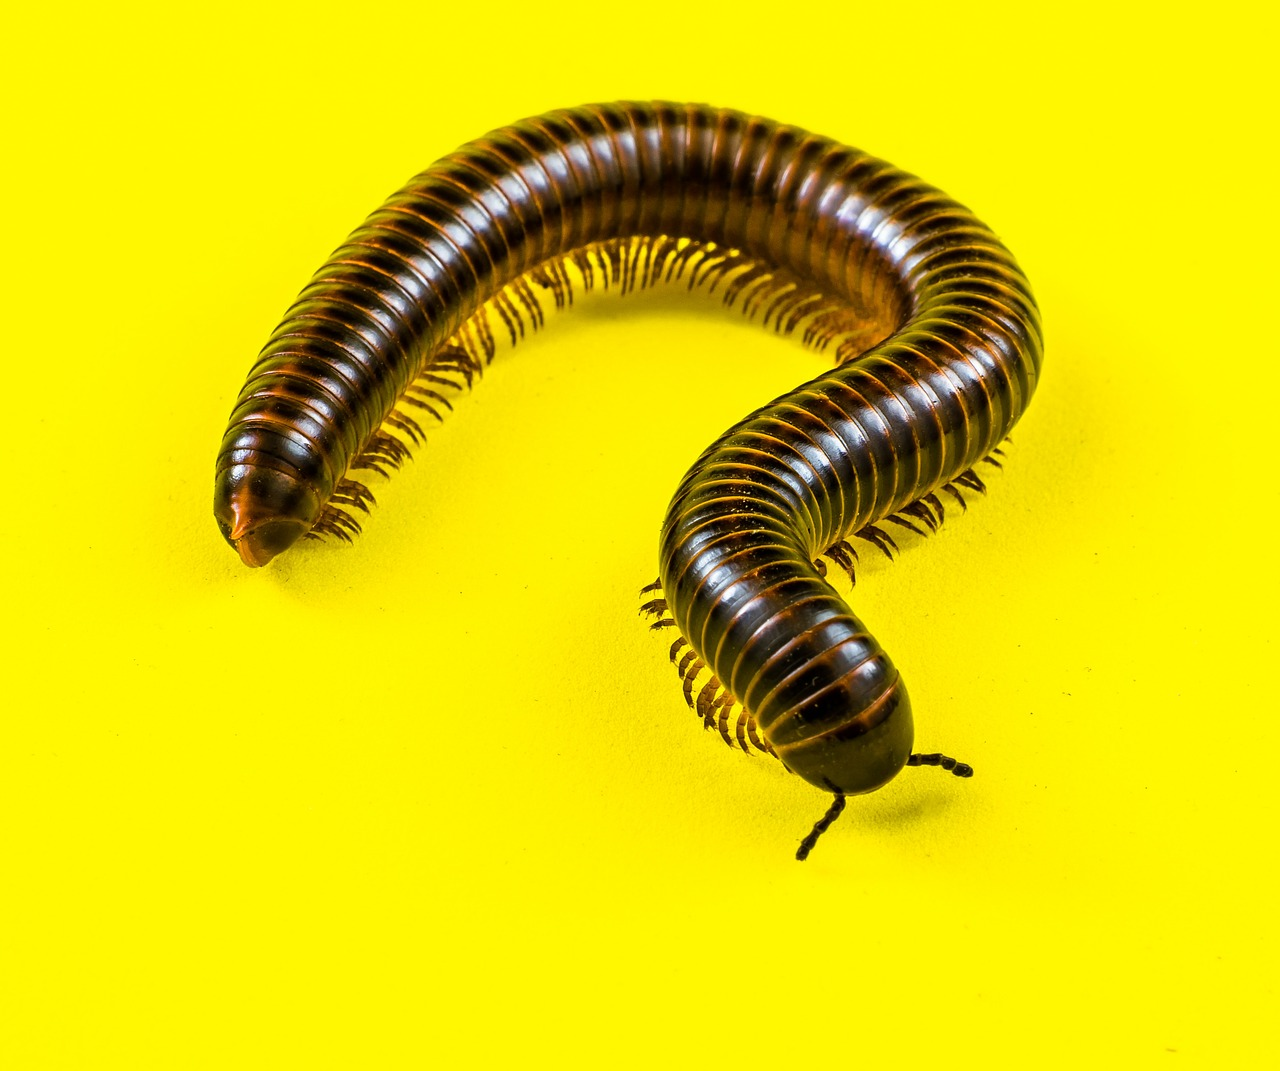 giant tausendfüßer,millipedes,arthropod,giant centipedes,myriapoda,centipedes,arthropoda,worm,free pictures, free photos, free images, royalty free, free illustrations, public domain